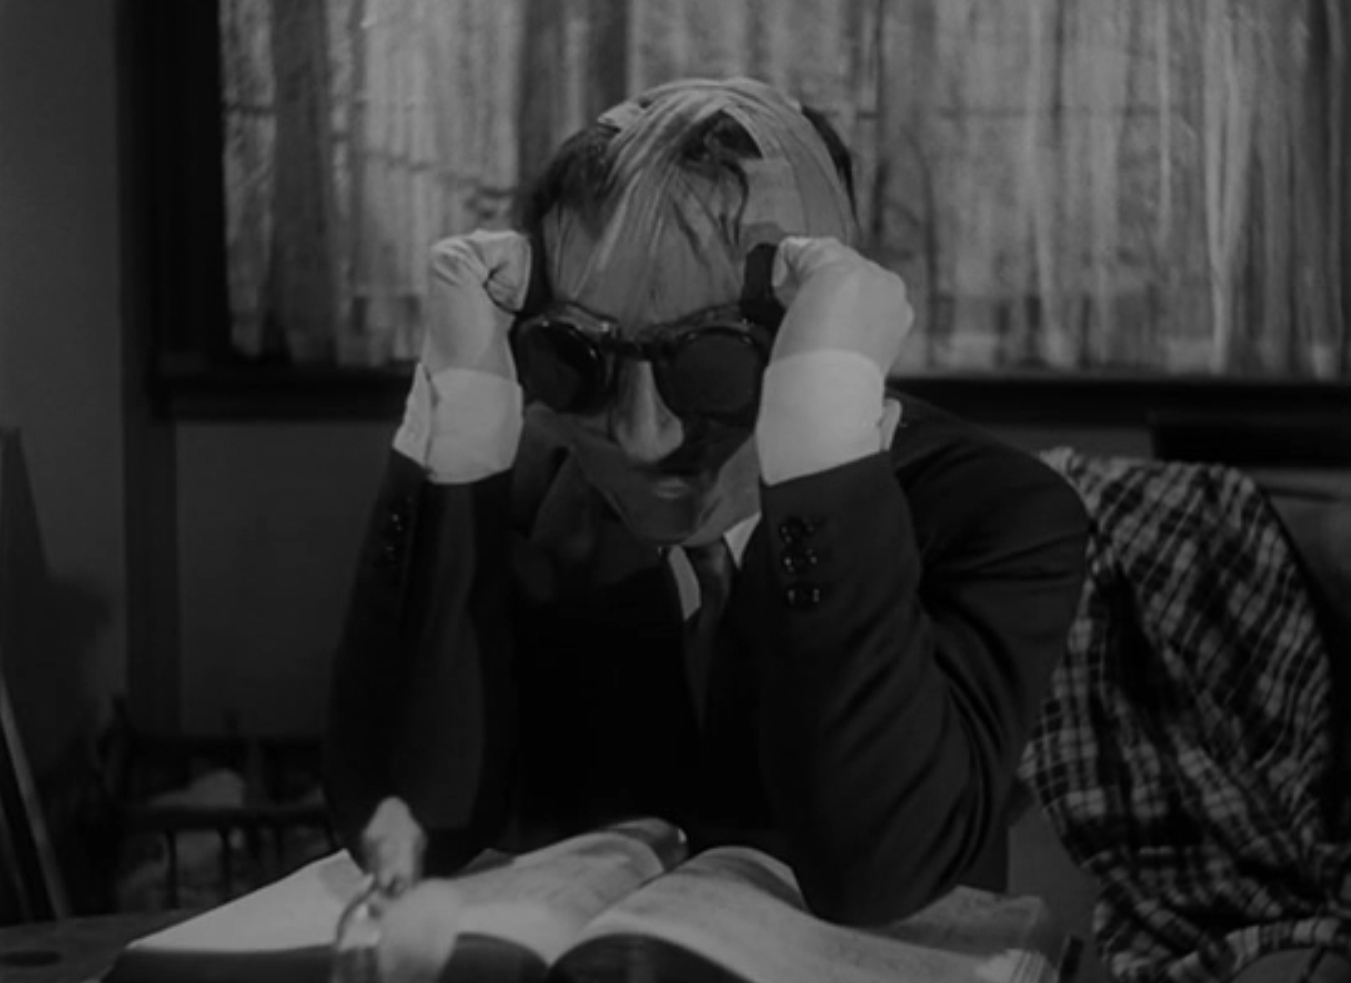 the invisible man 1933 review claude rains and gloria invisibleman9 acircmiddot invisibleman7 acircmiddot invisibleman16